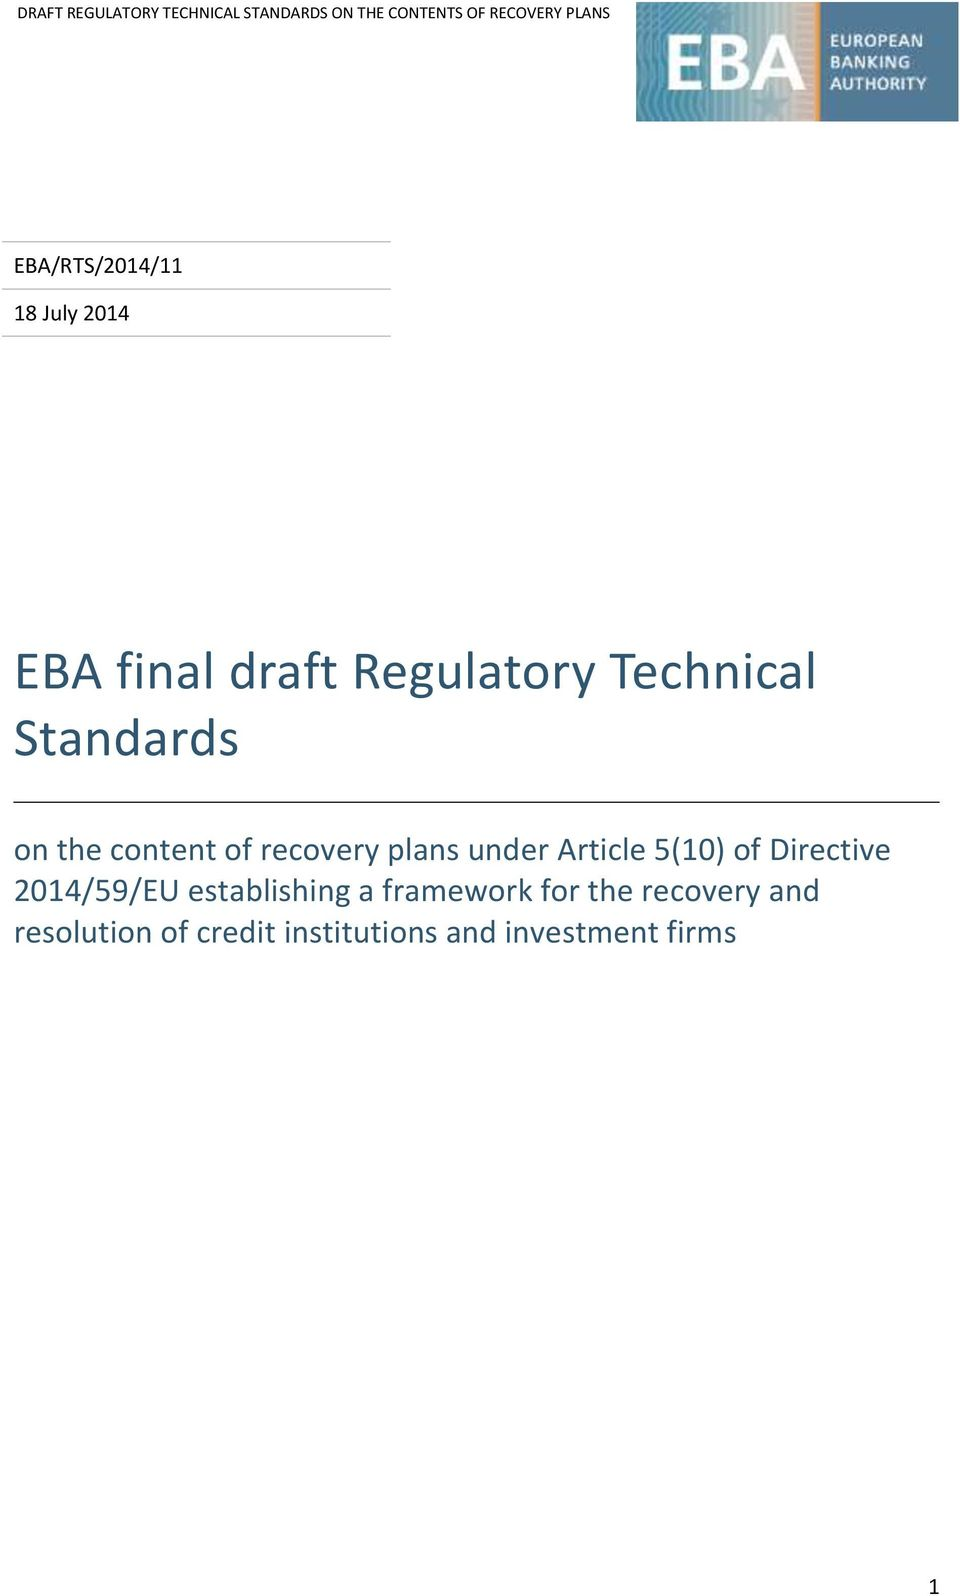 Article 5(10) of Directive 2014/59/EU establishing a framework